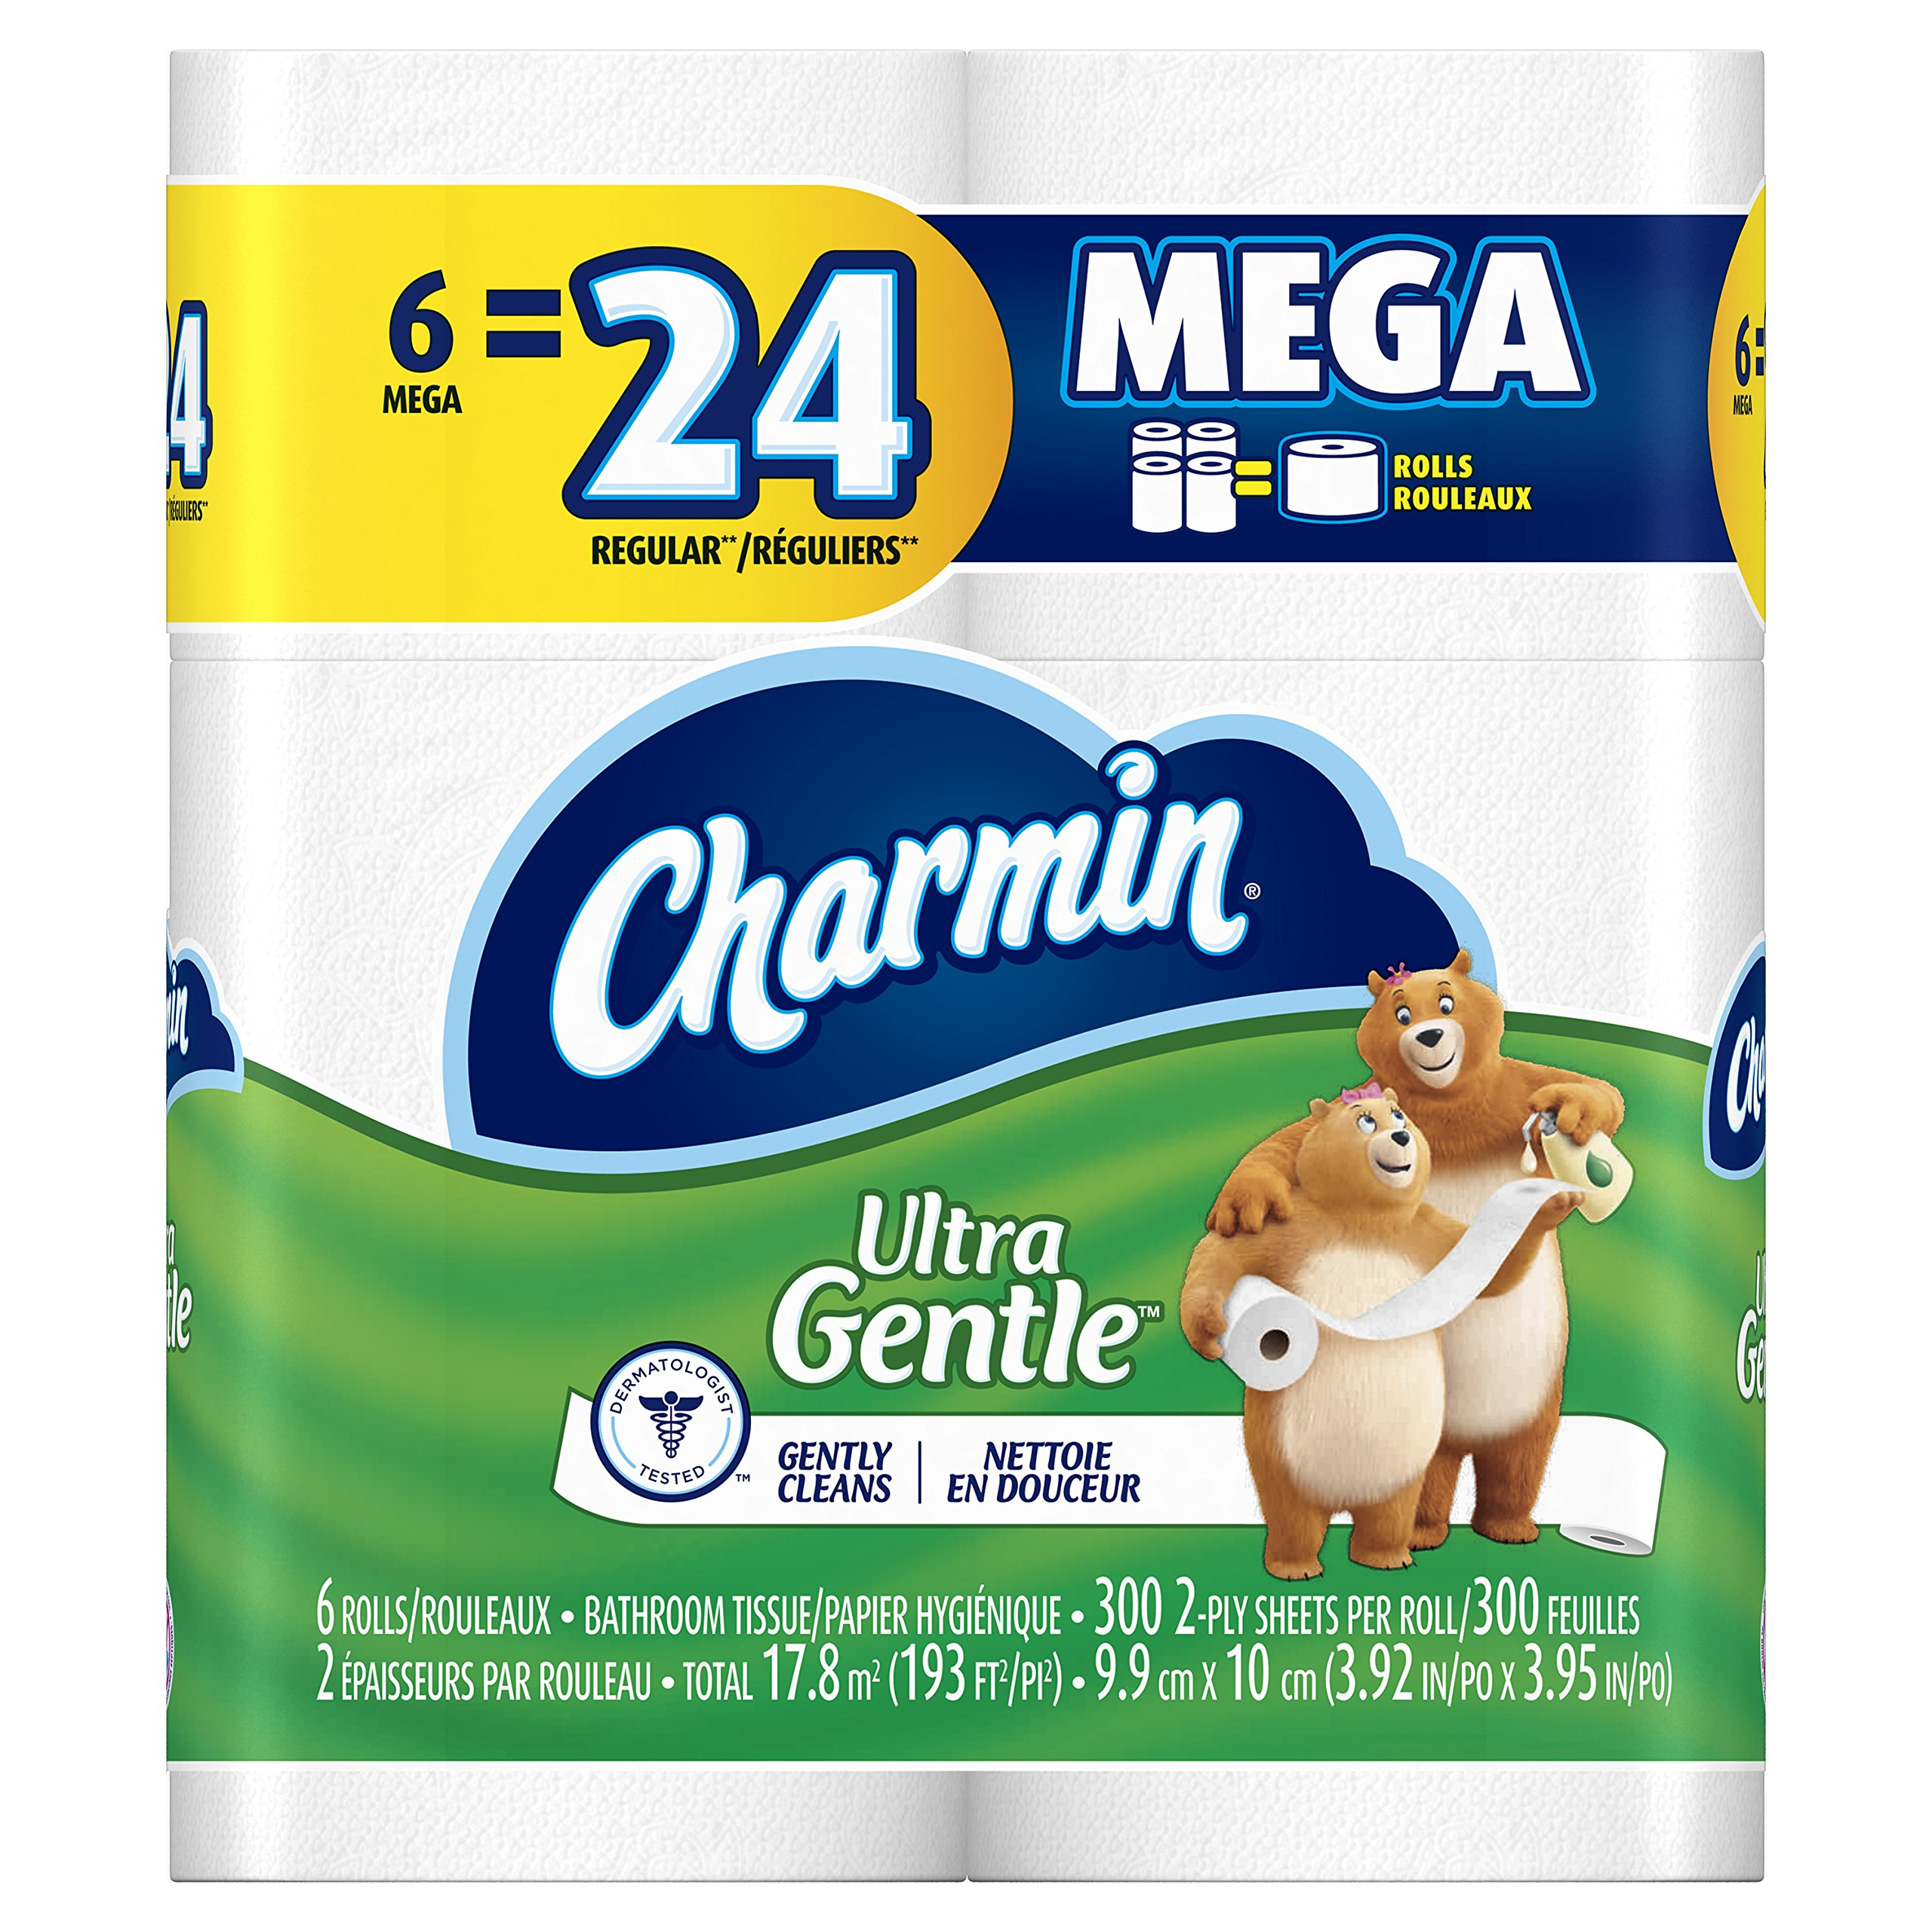 Charmin Toilet Paper On Sale: Charmin Ultra Gentle Toilet Paper 6 Mega Rolls (Pack Of 3